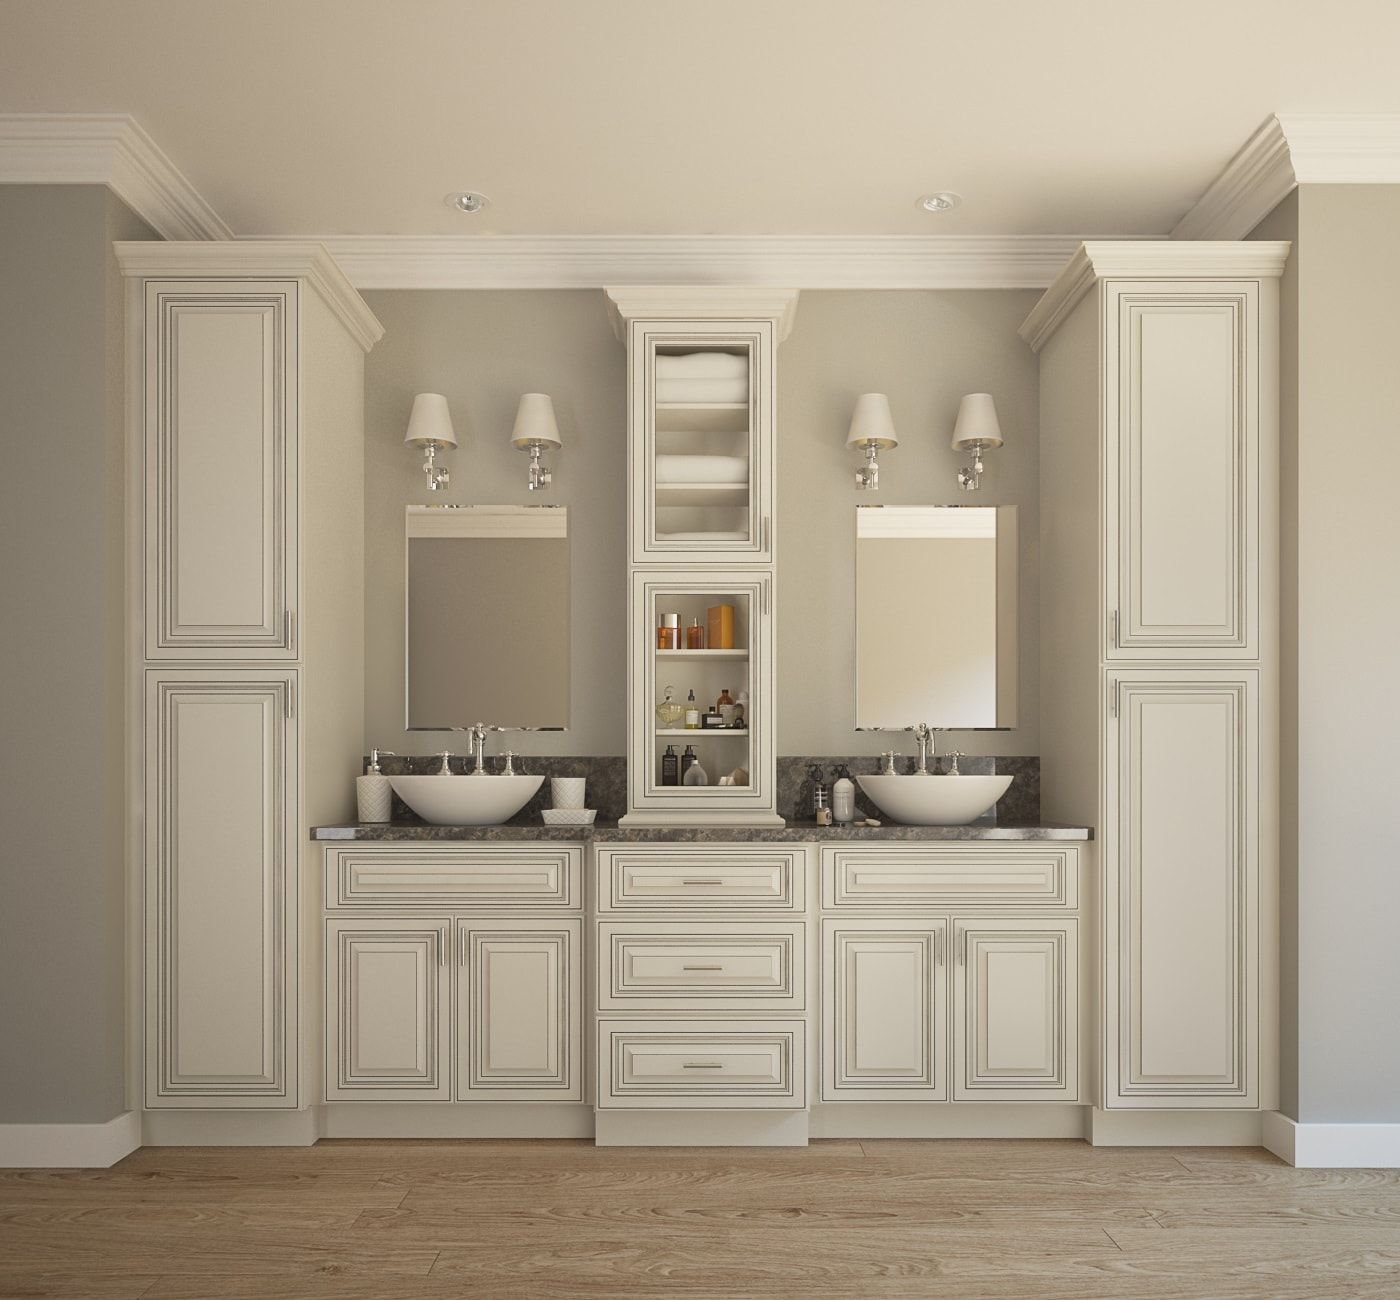 Rta Kitchen Cabinets Online: Signature%20Vanilla%20Glaze%20Bathroom%20Vanity